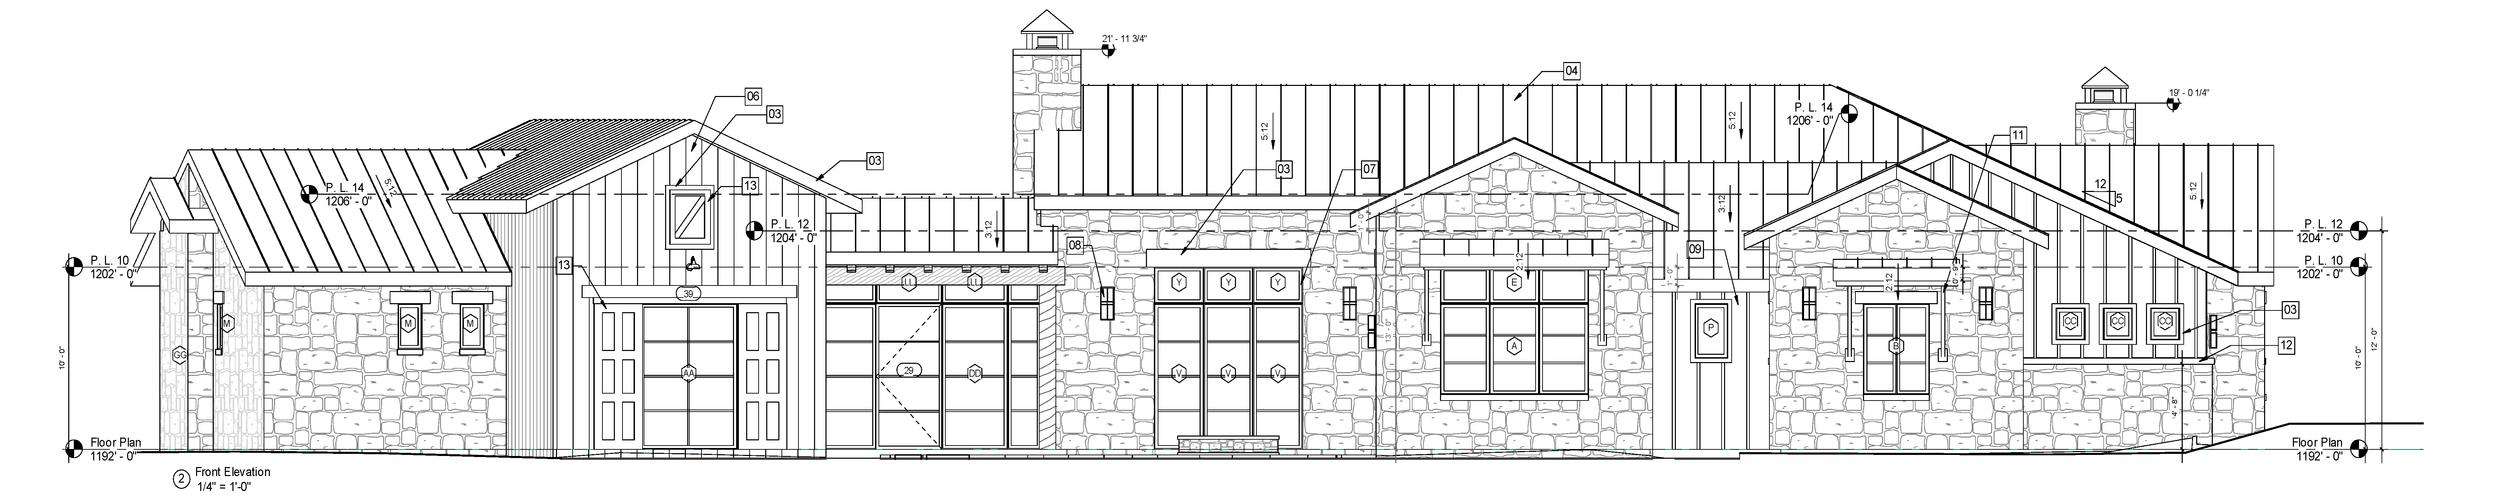 CAD for construction drawings